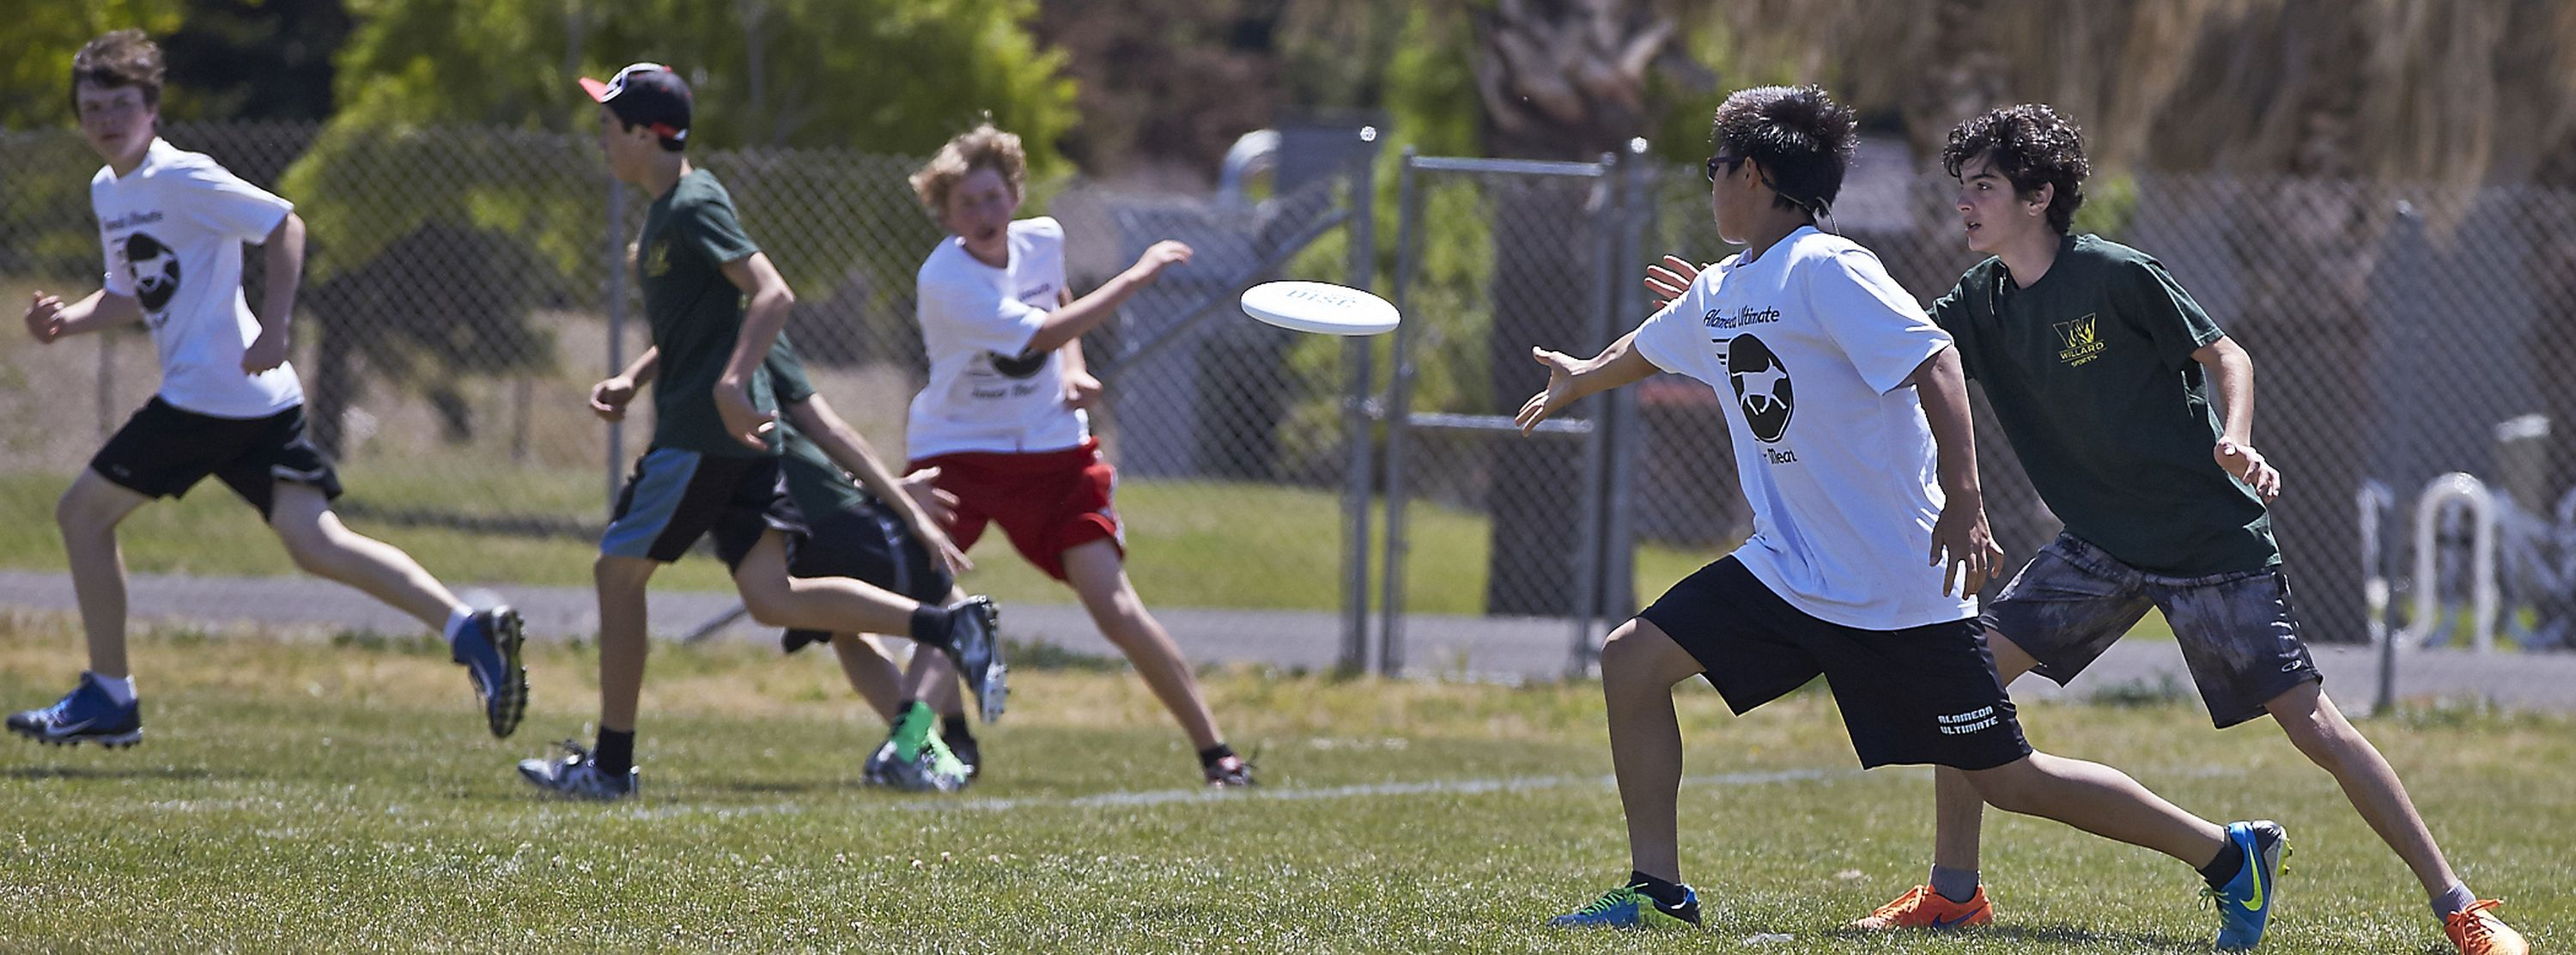 Youth Ultimate